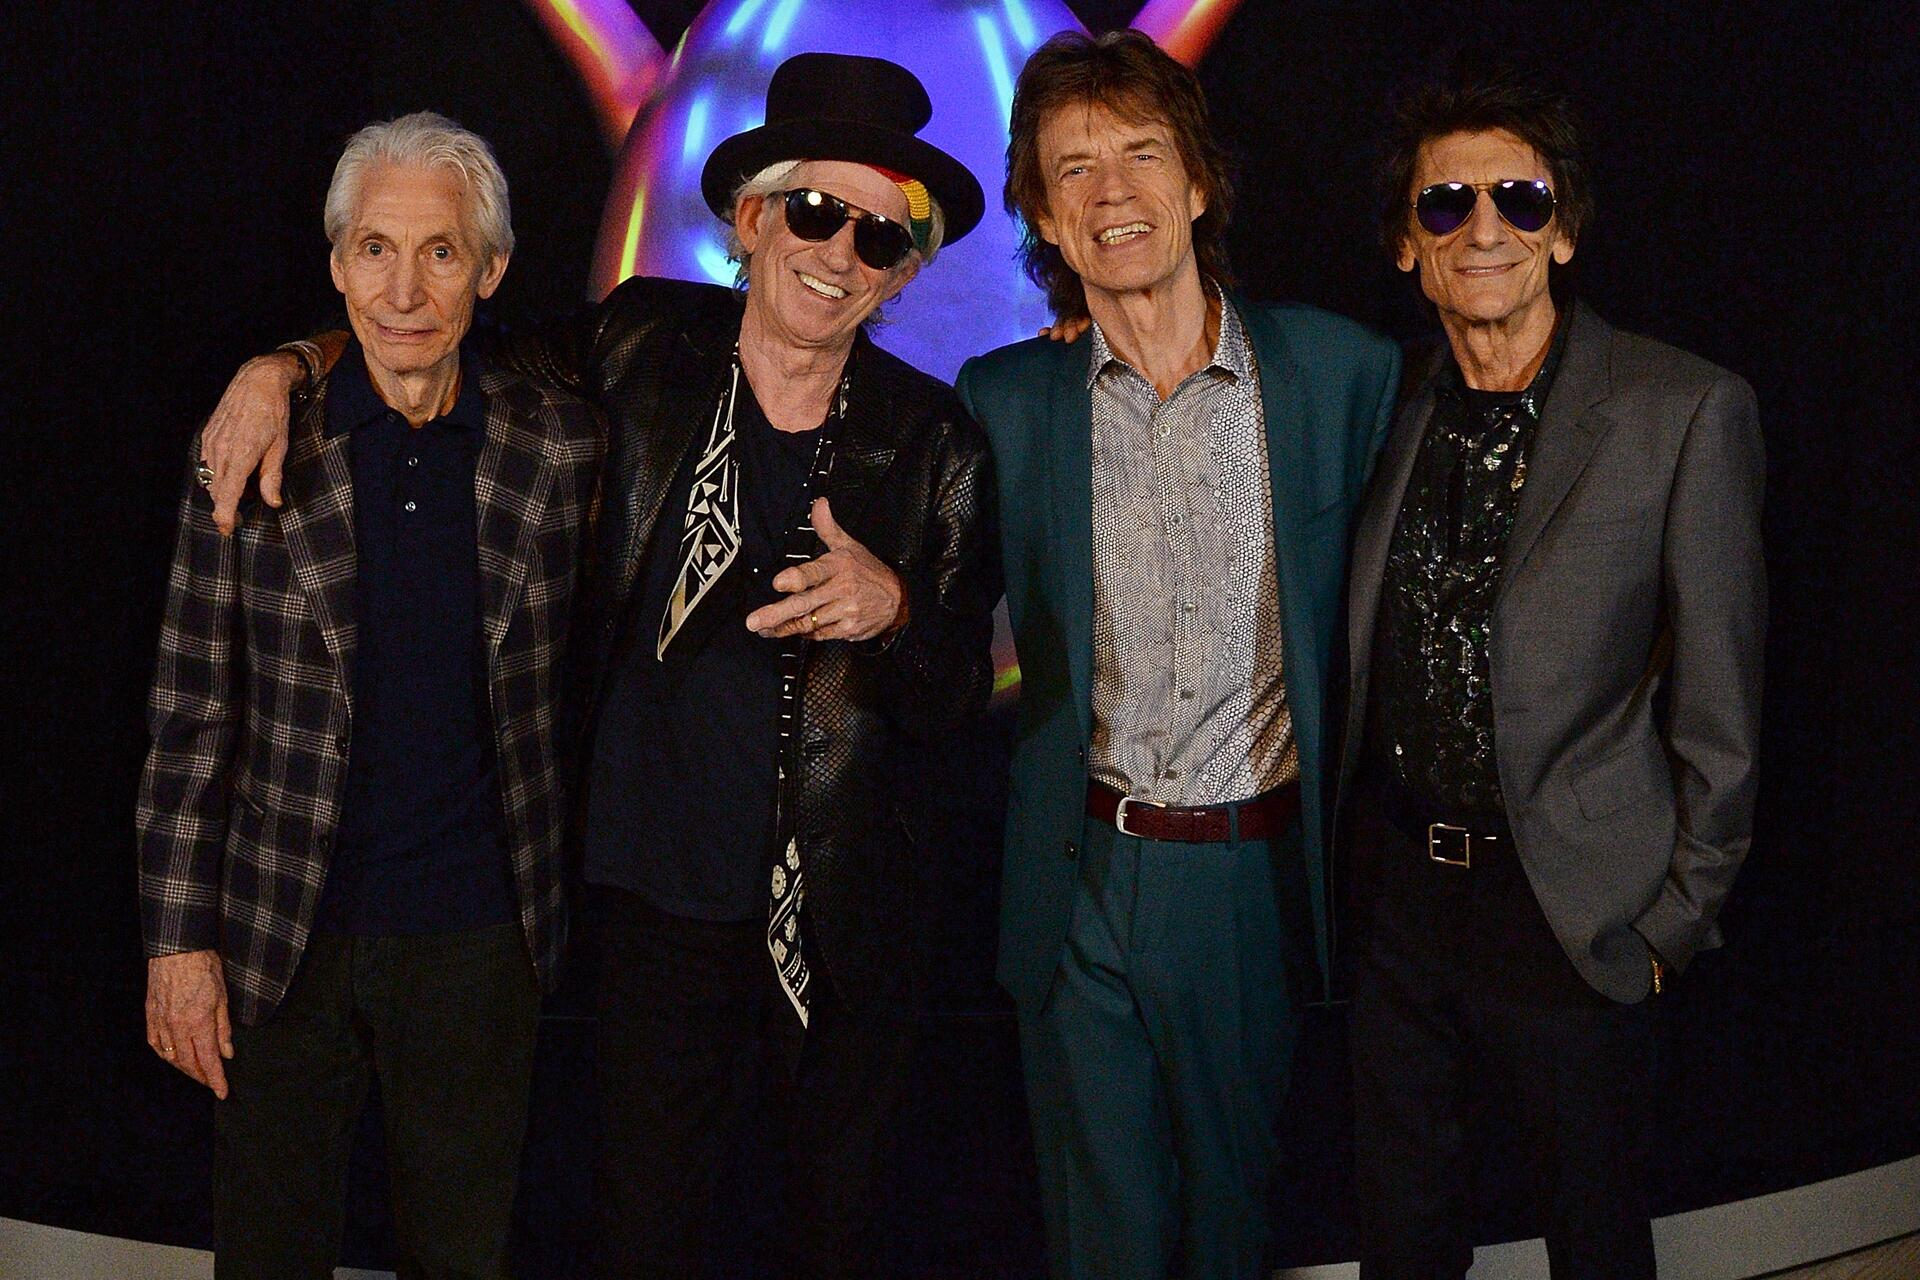 Bild zu Charlie Watts, Keith Richards, Mick Jagger, Ronnie Wood, Rolling Stones, Album